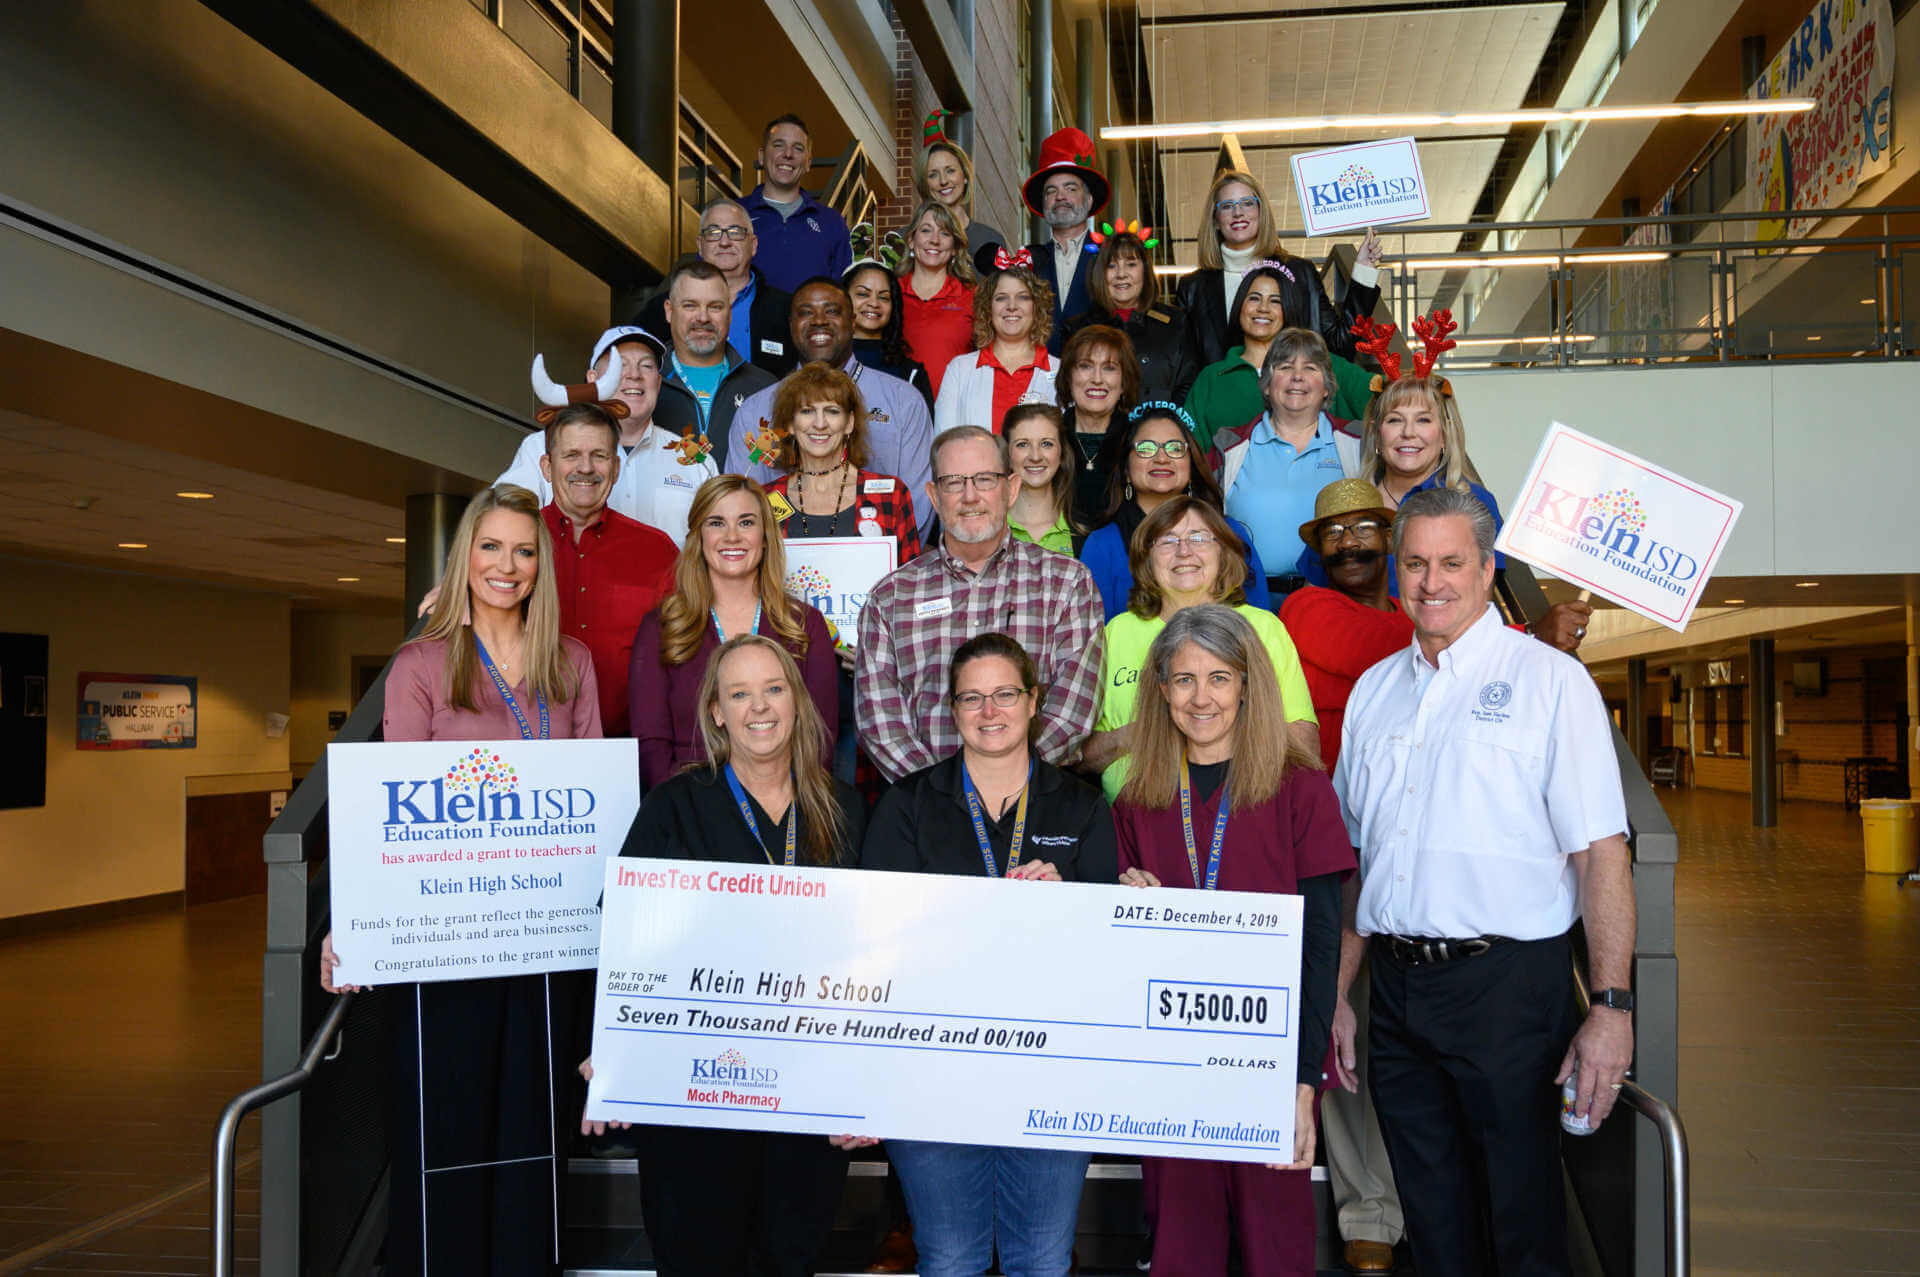 Klein High School Receives $7,500 Grant for Mock Pharmacy